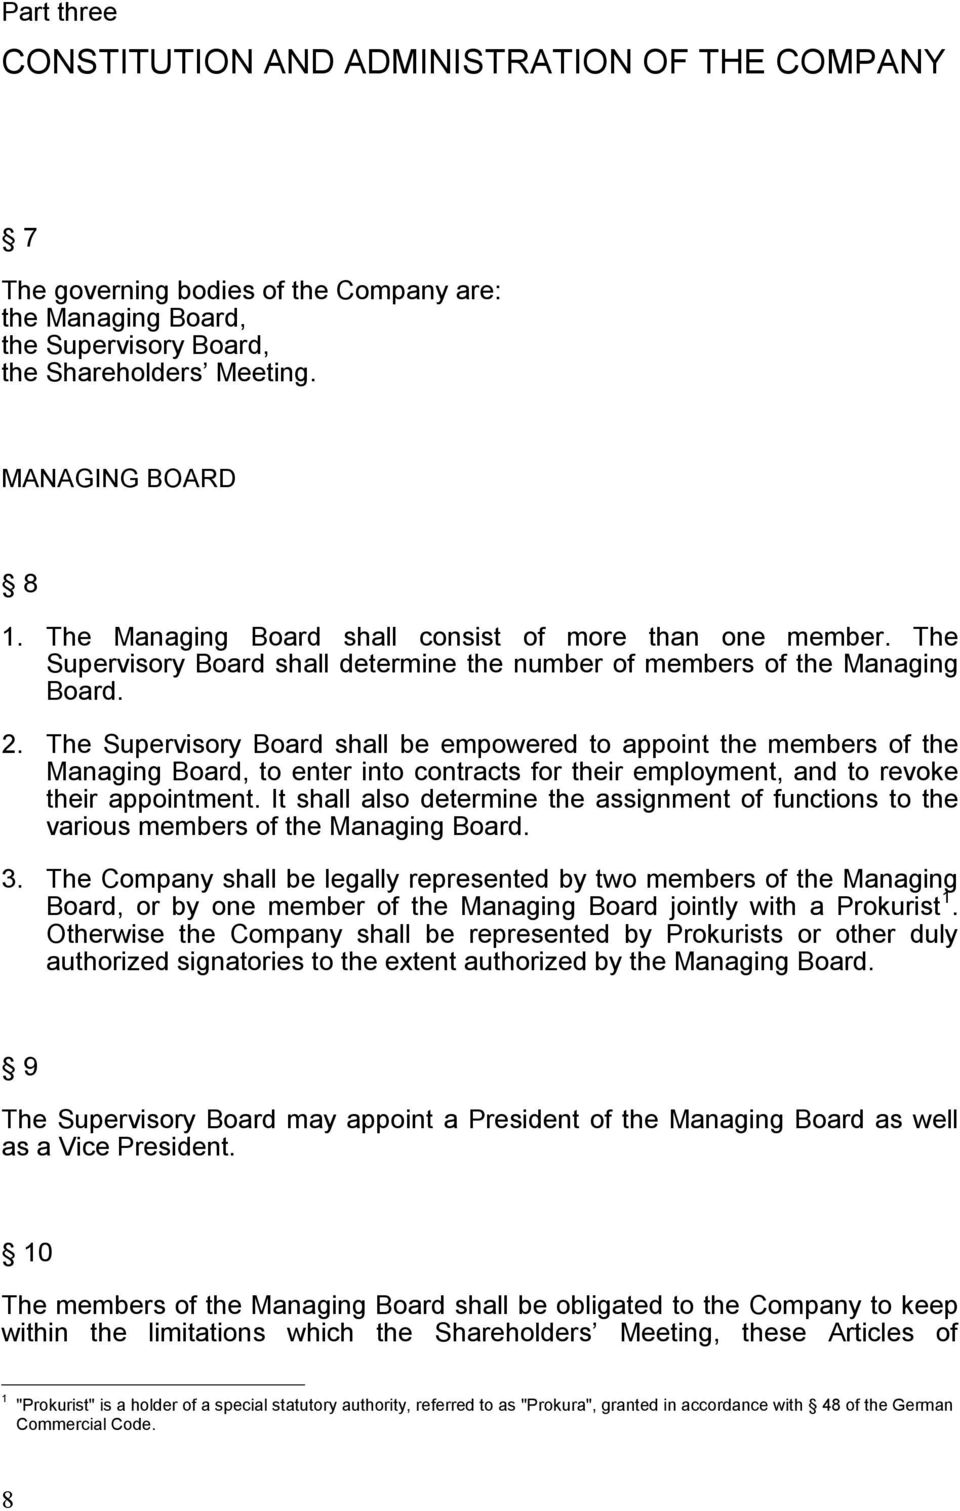 The Supervisory Board shall be empowered to appoint the members of the Managing Board, to enter into contracts for their employment, and to revoke their appointment.